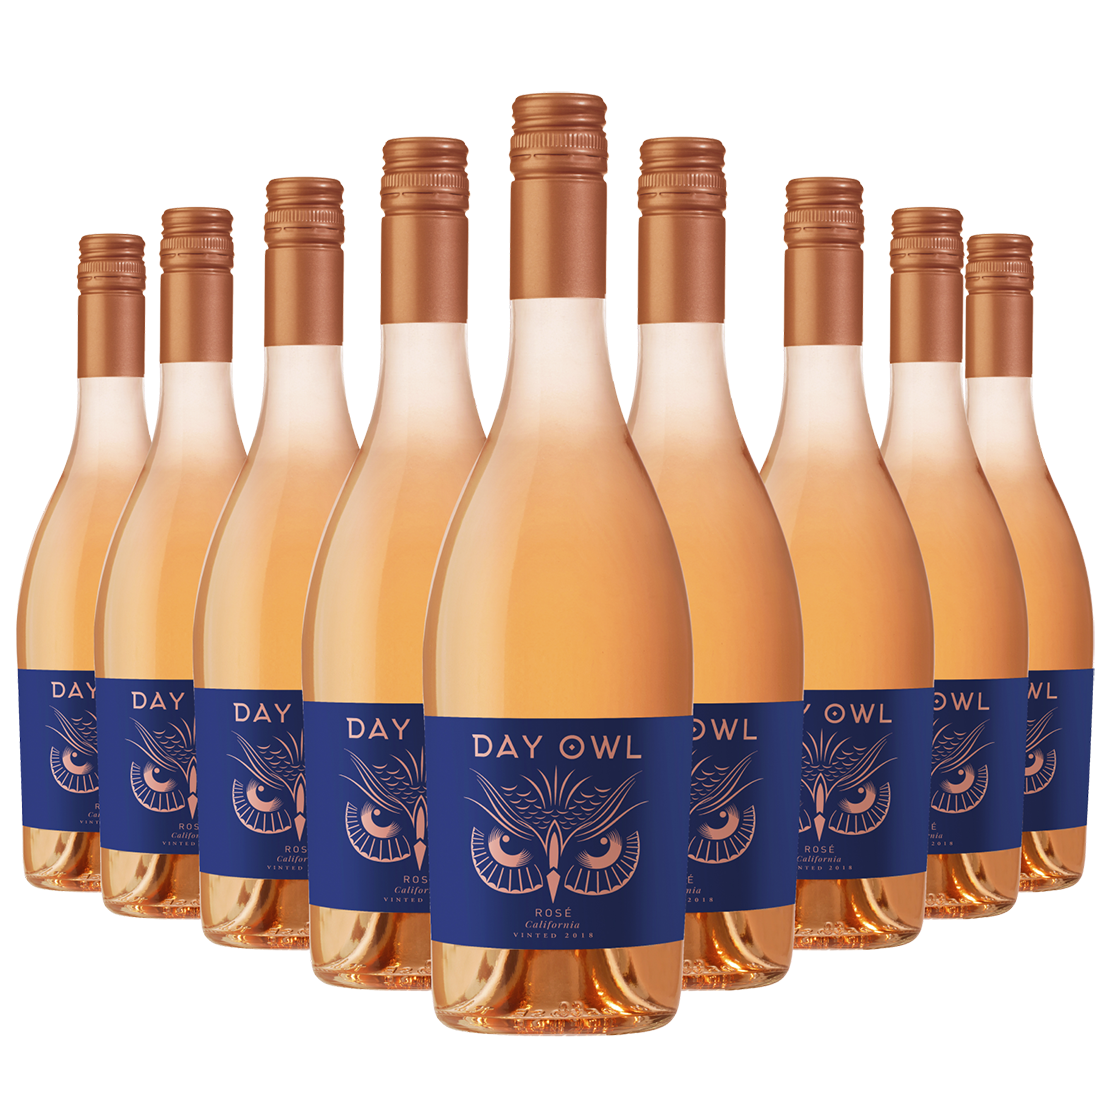 Day Owl Rosé 12 Bottle Pack